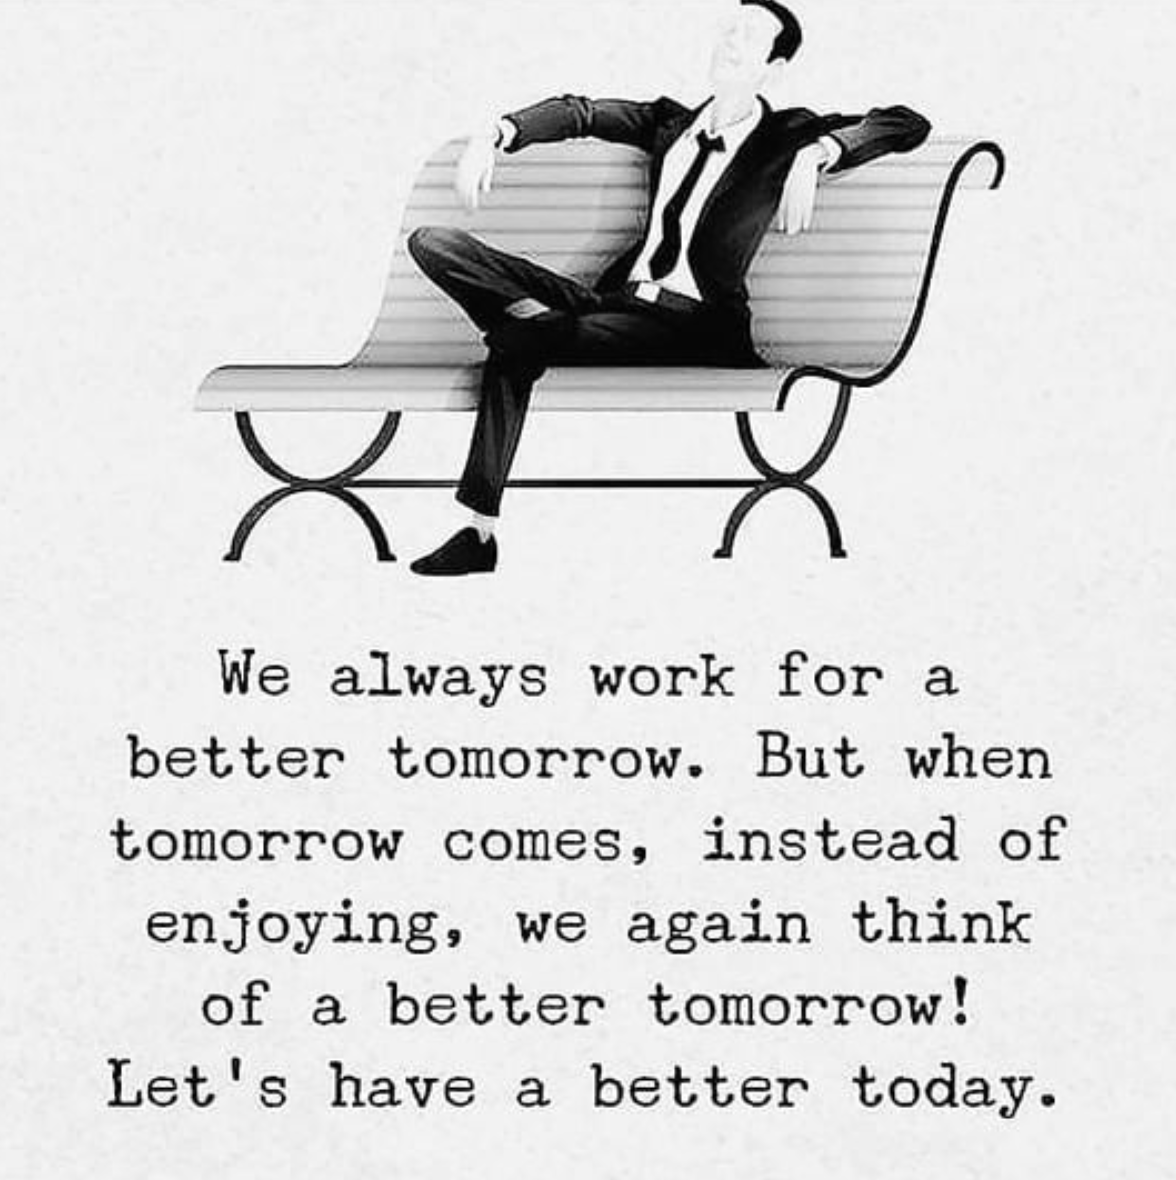 [Image] Work for better today and take the time to enjoy your life